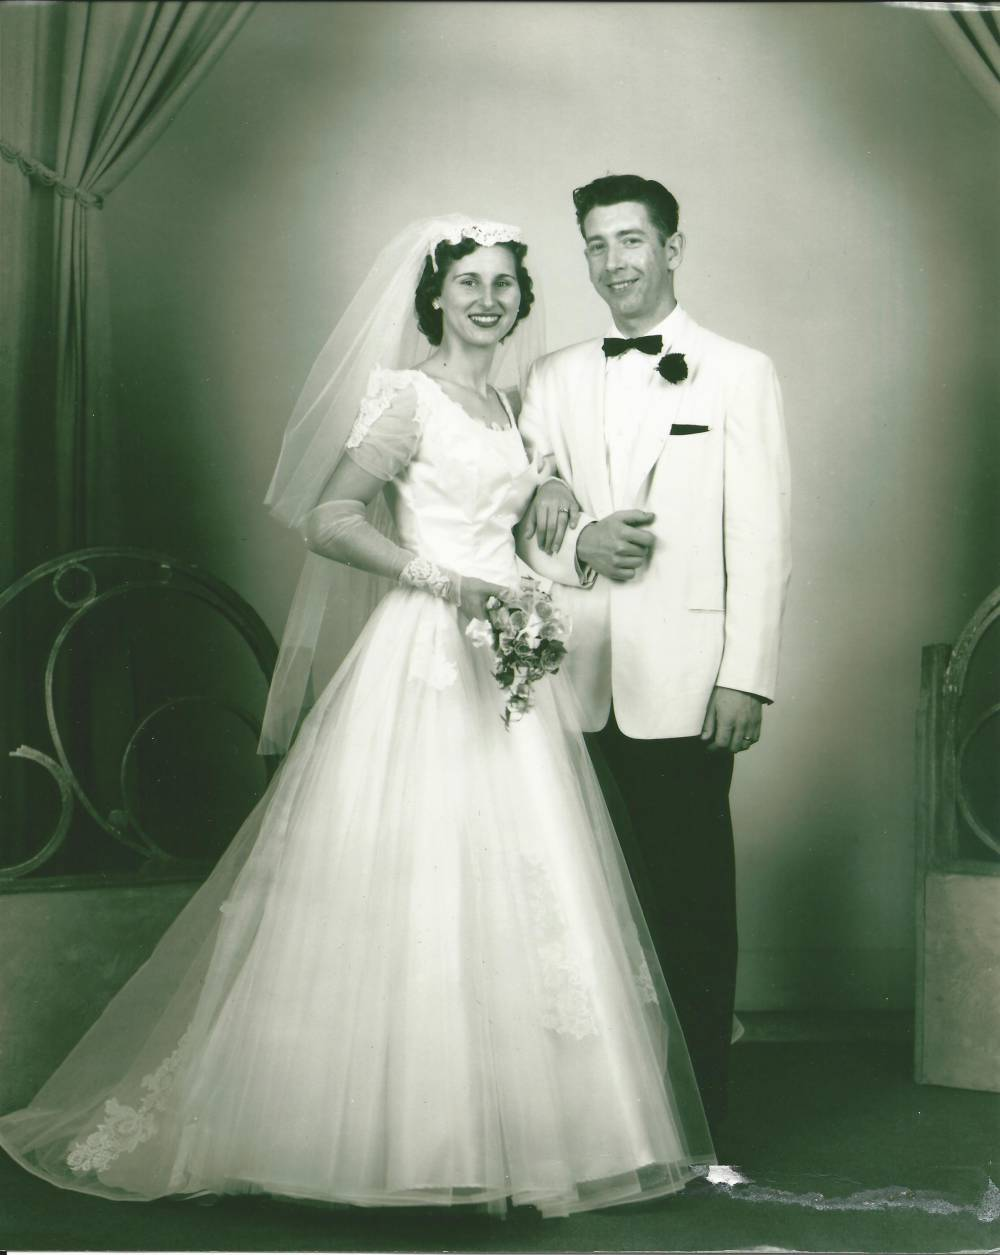 Amanda's grandparents on their wedding day. Amanda's grandma Jane taught her to sew and inspired her career as a dressmaker.